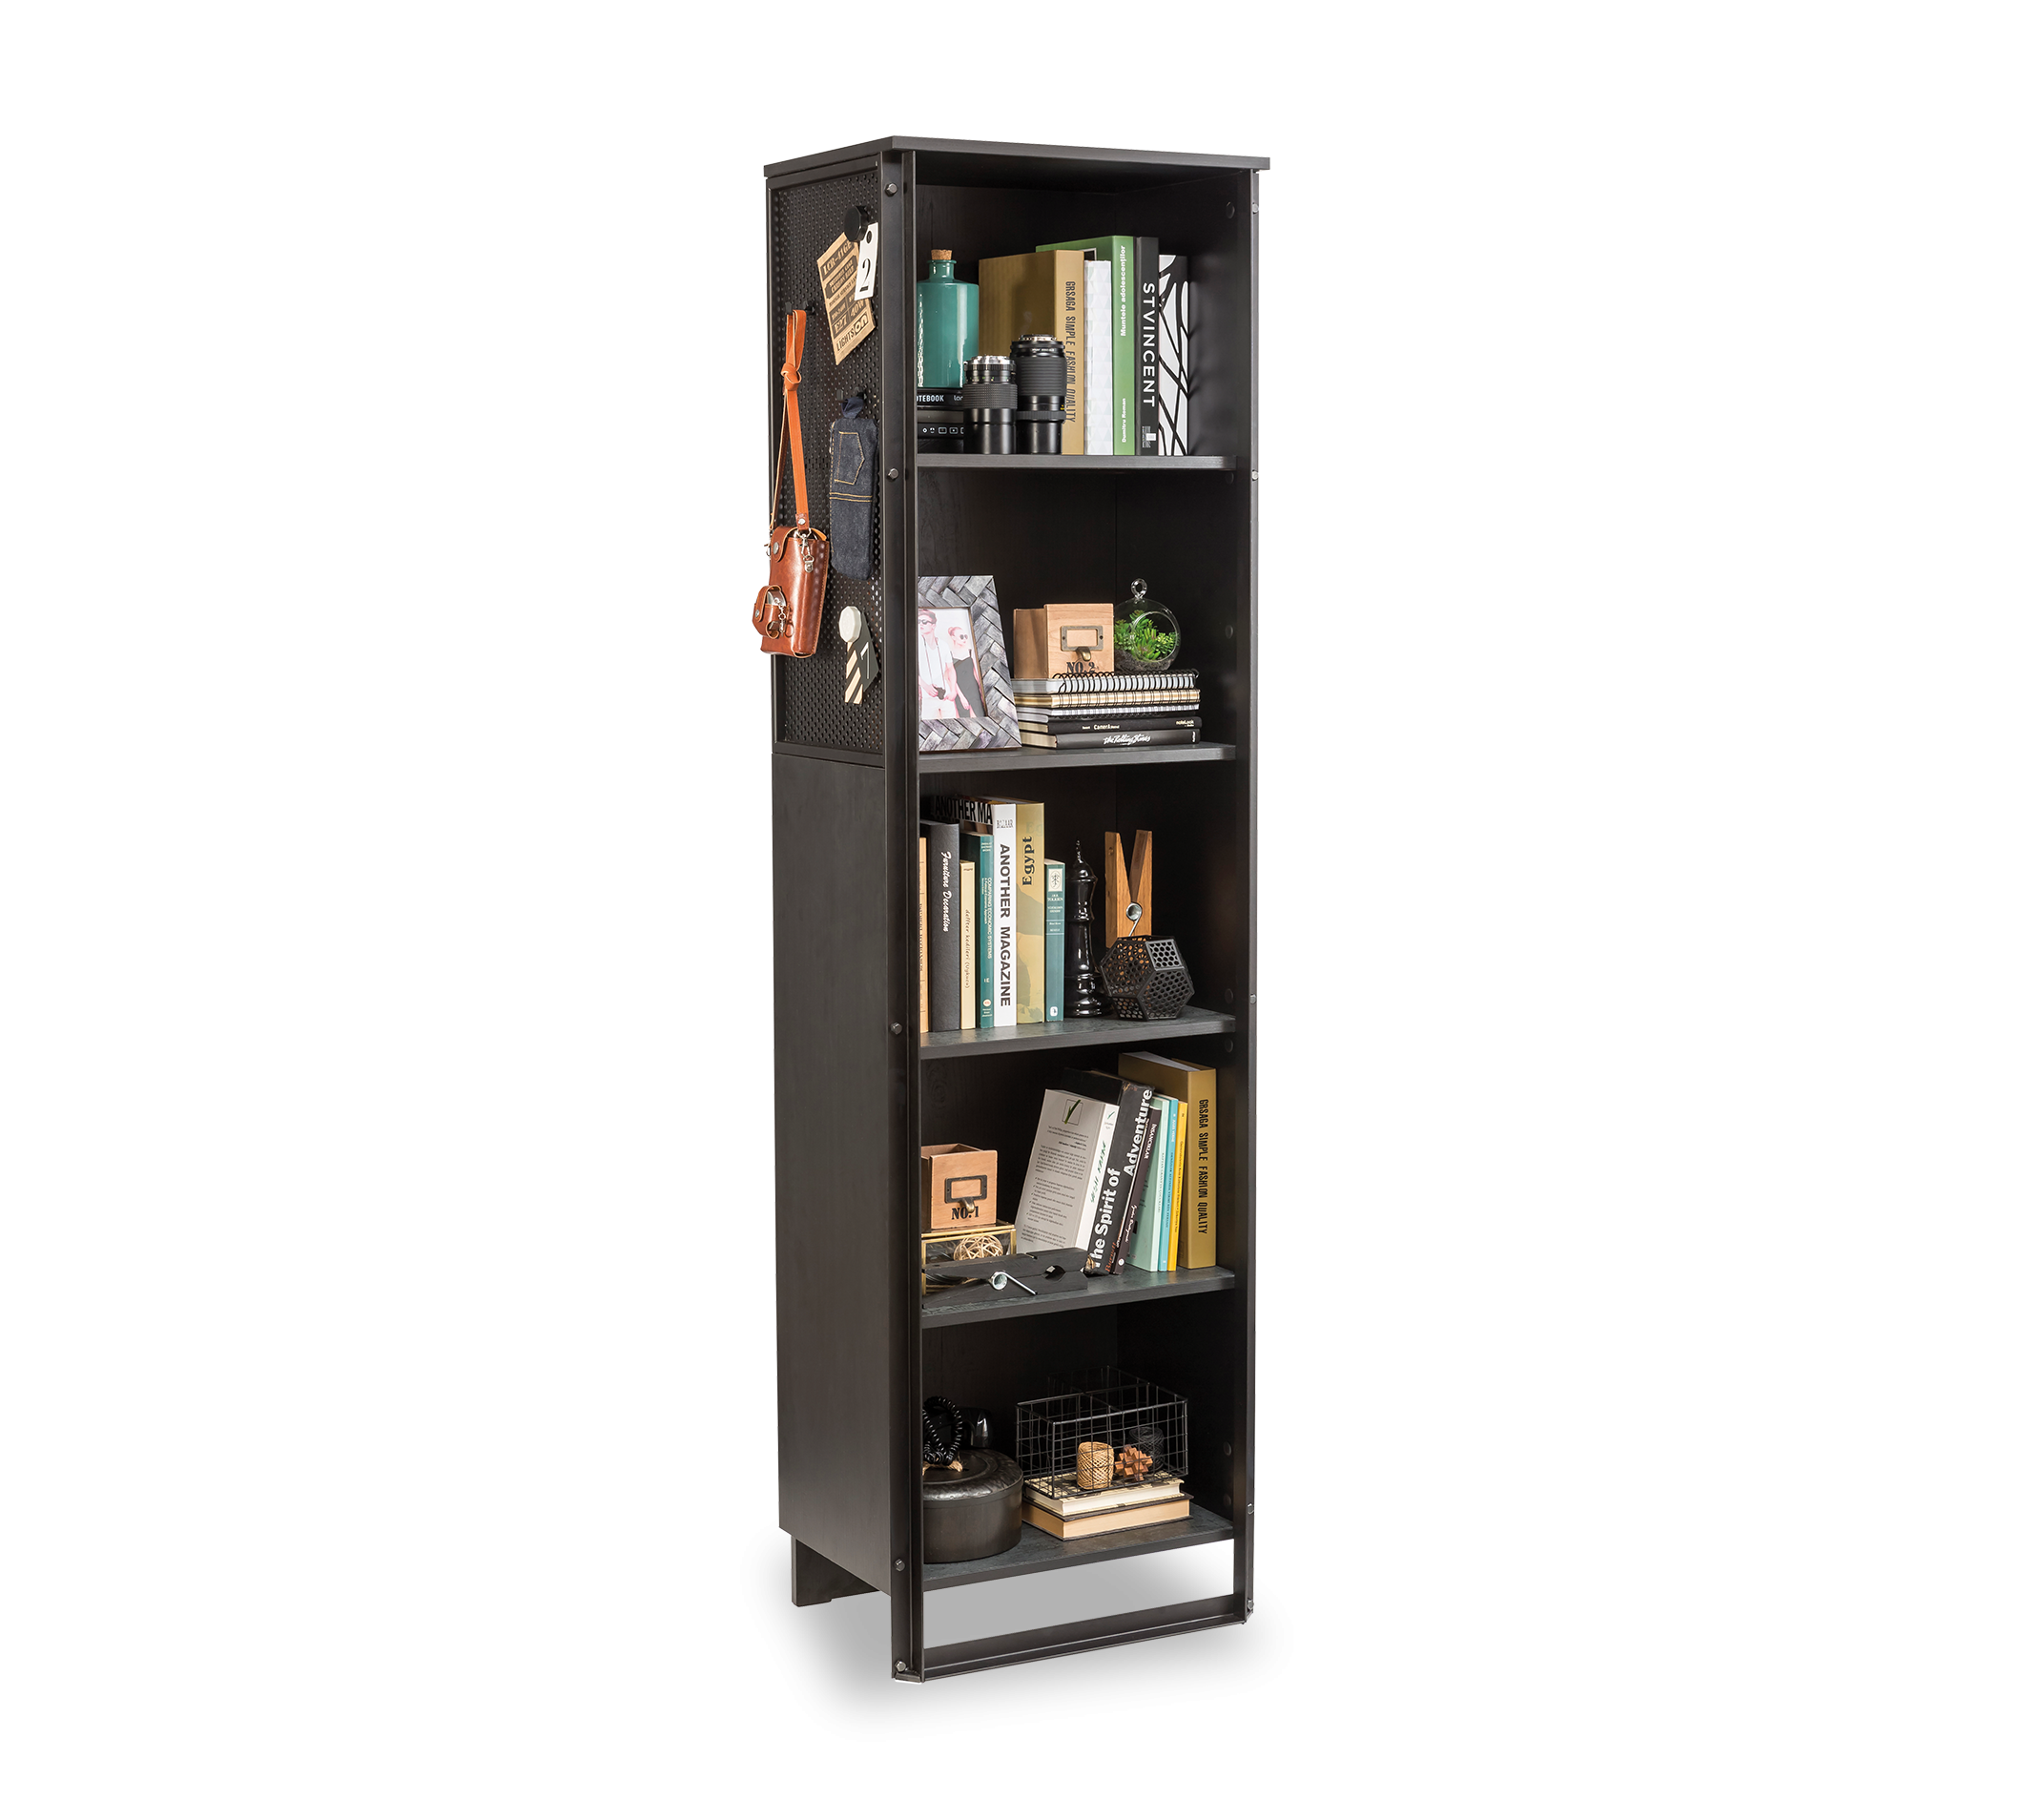 Biblioteca din pal si metal pentru tineret Dark Metal New Black / Graphite, l53xA35xH180 cm imagine